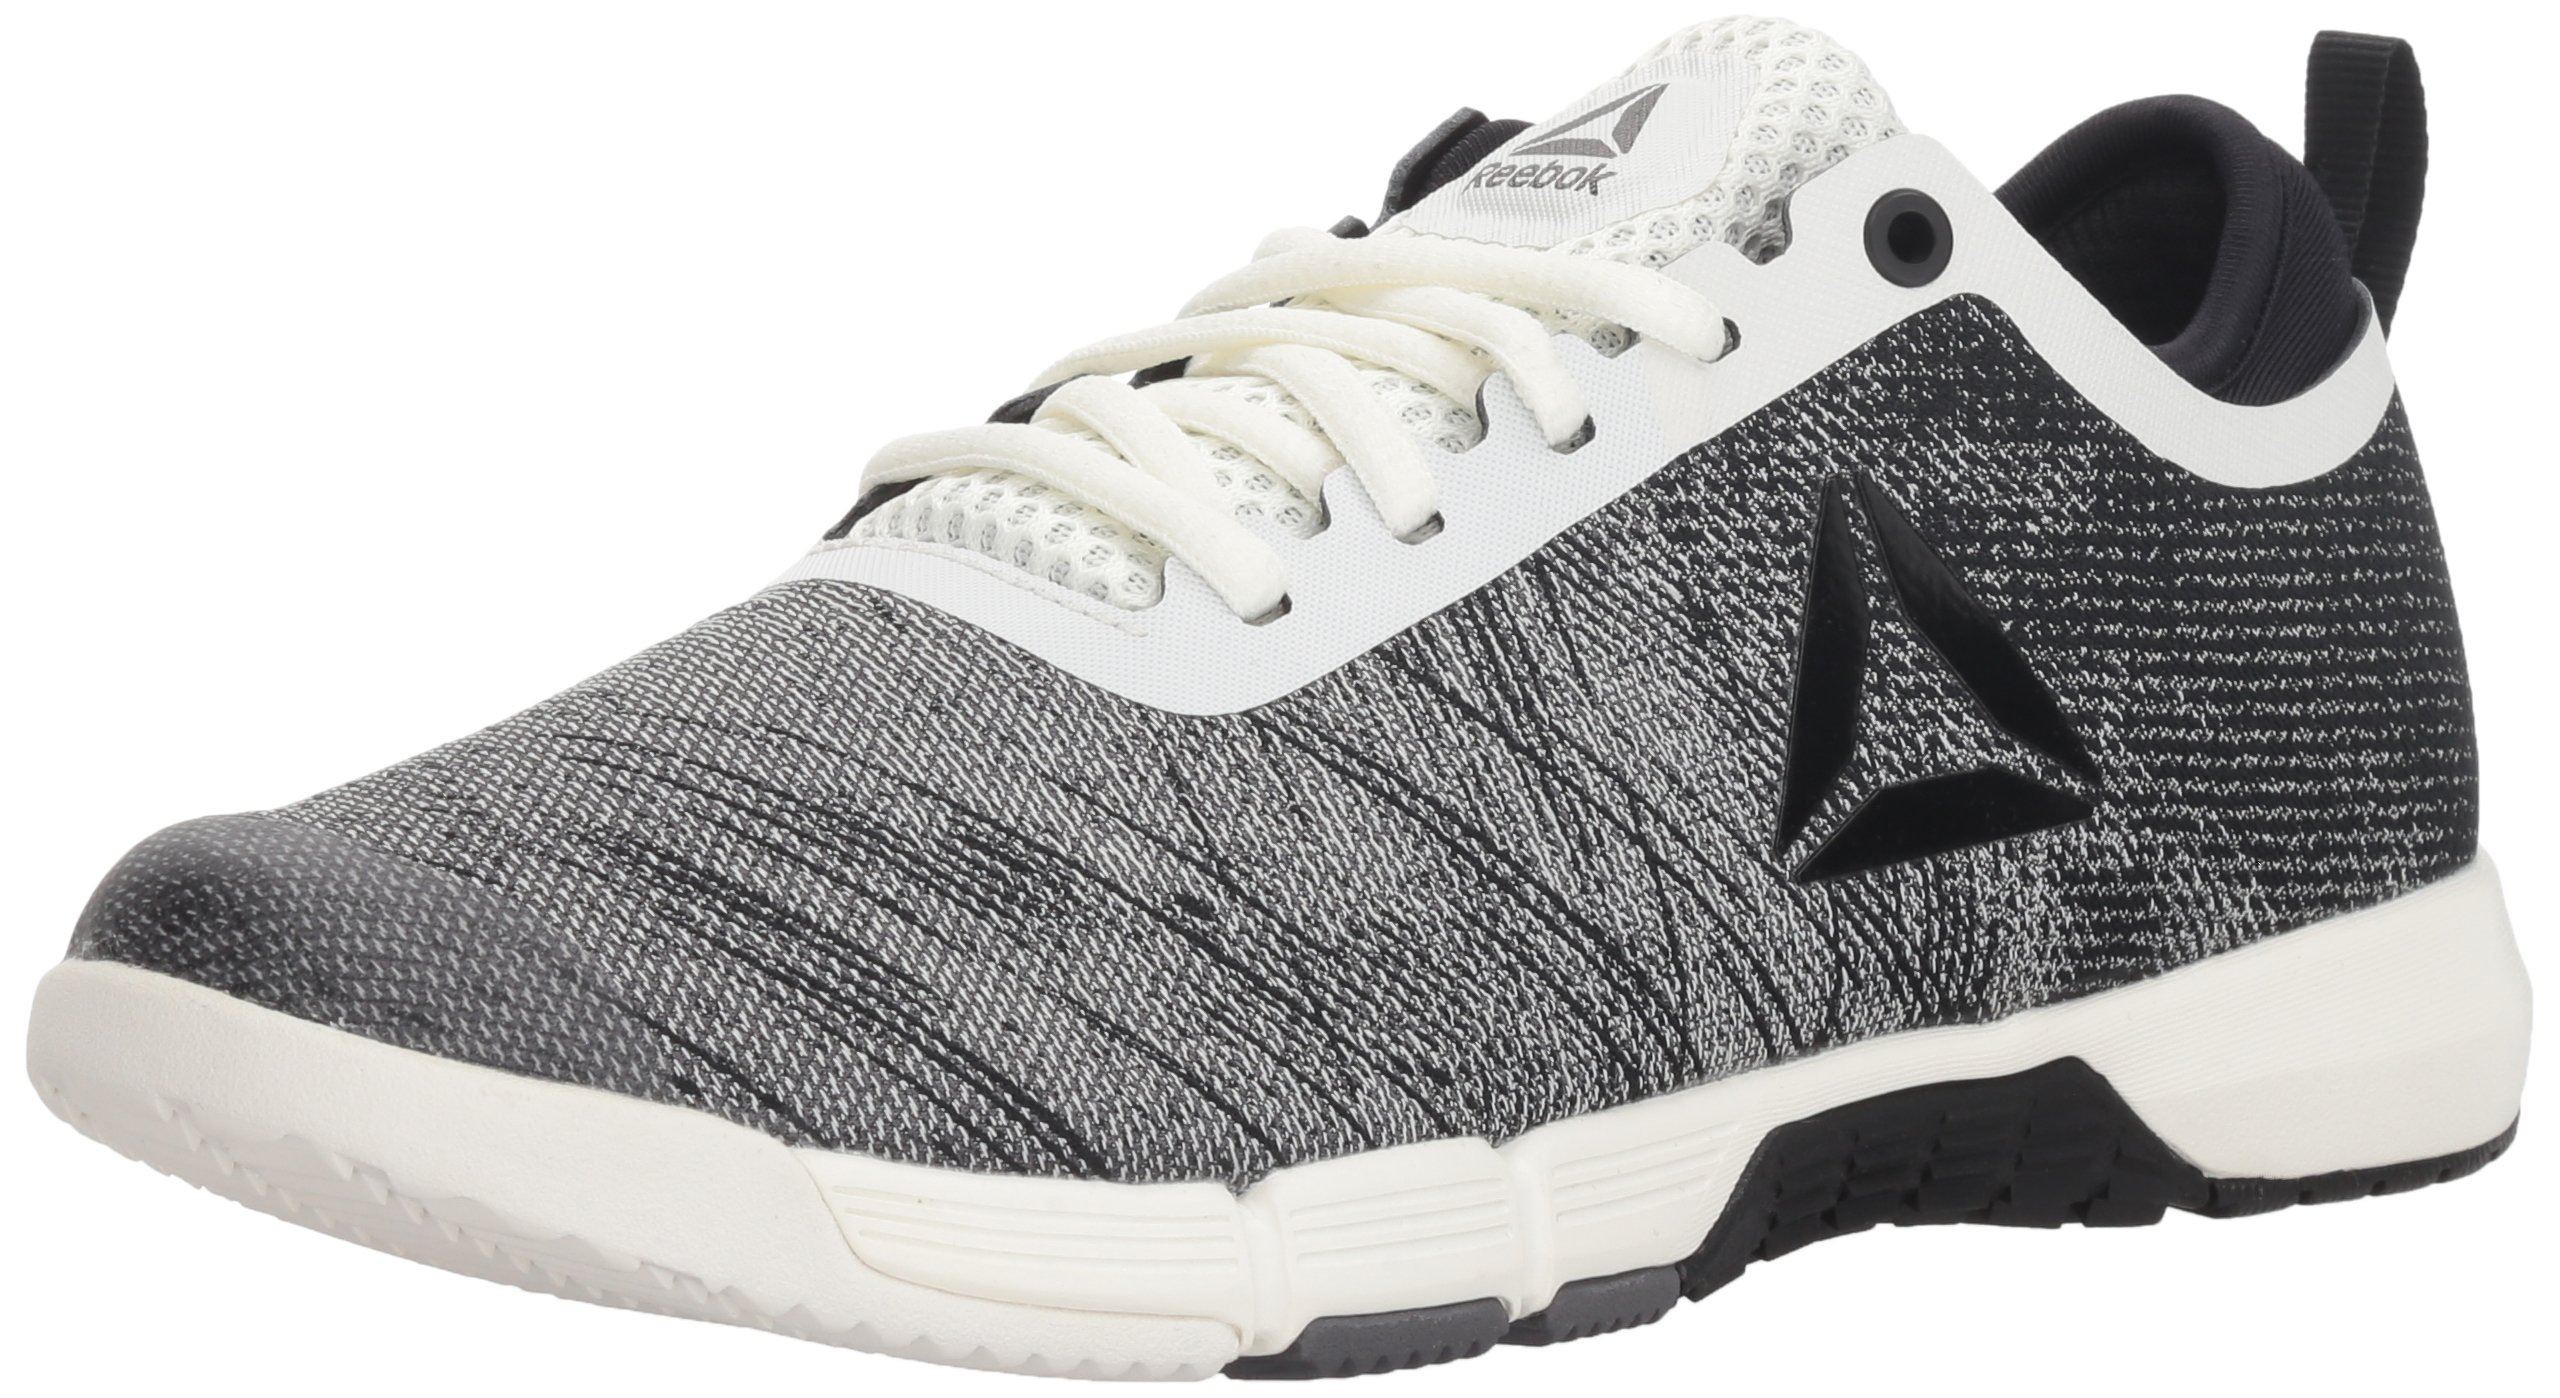 Reebok Women's Speed Her TR Cross Trainer, Chalk/Black/Ash Grey, 8.5 M US